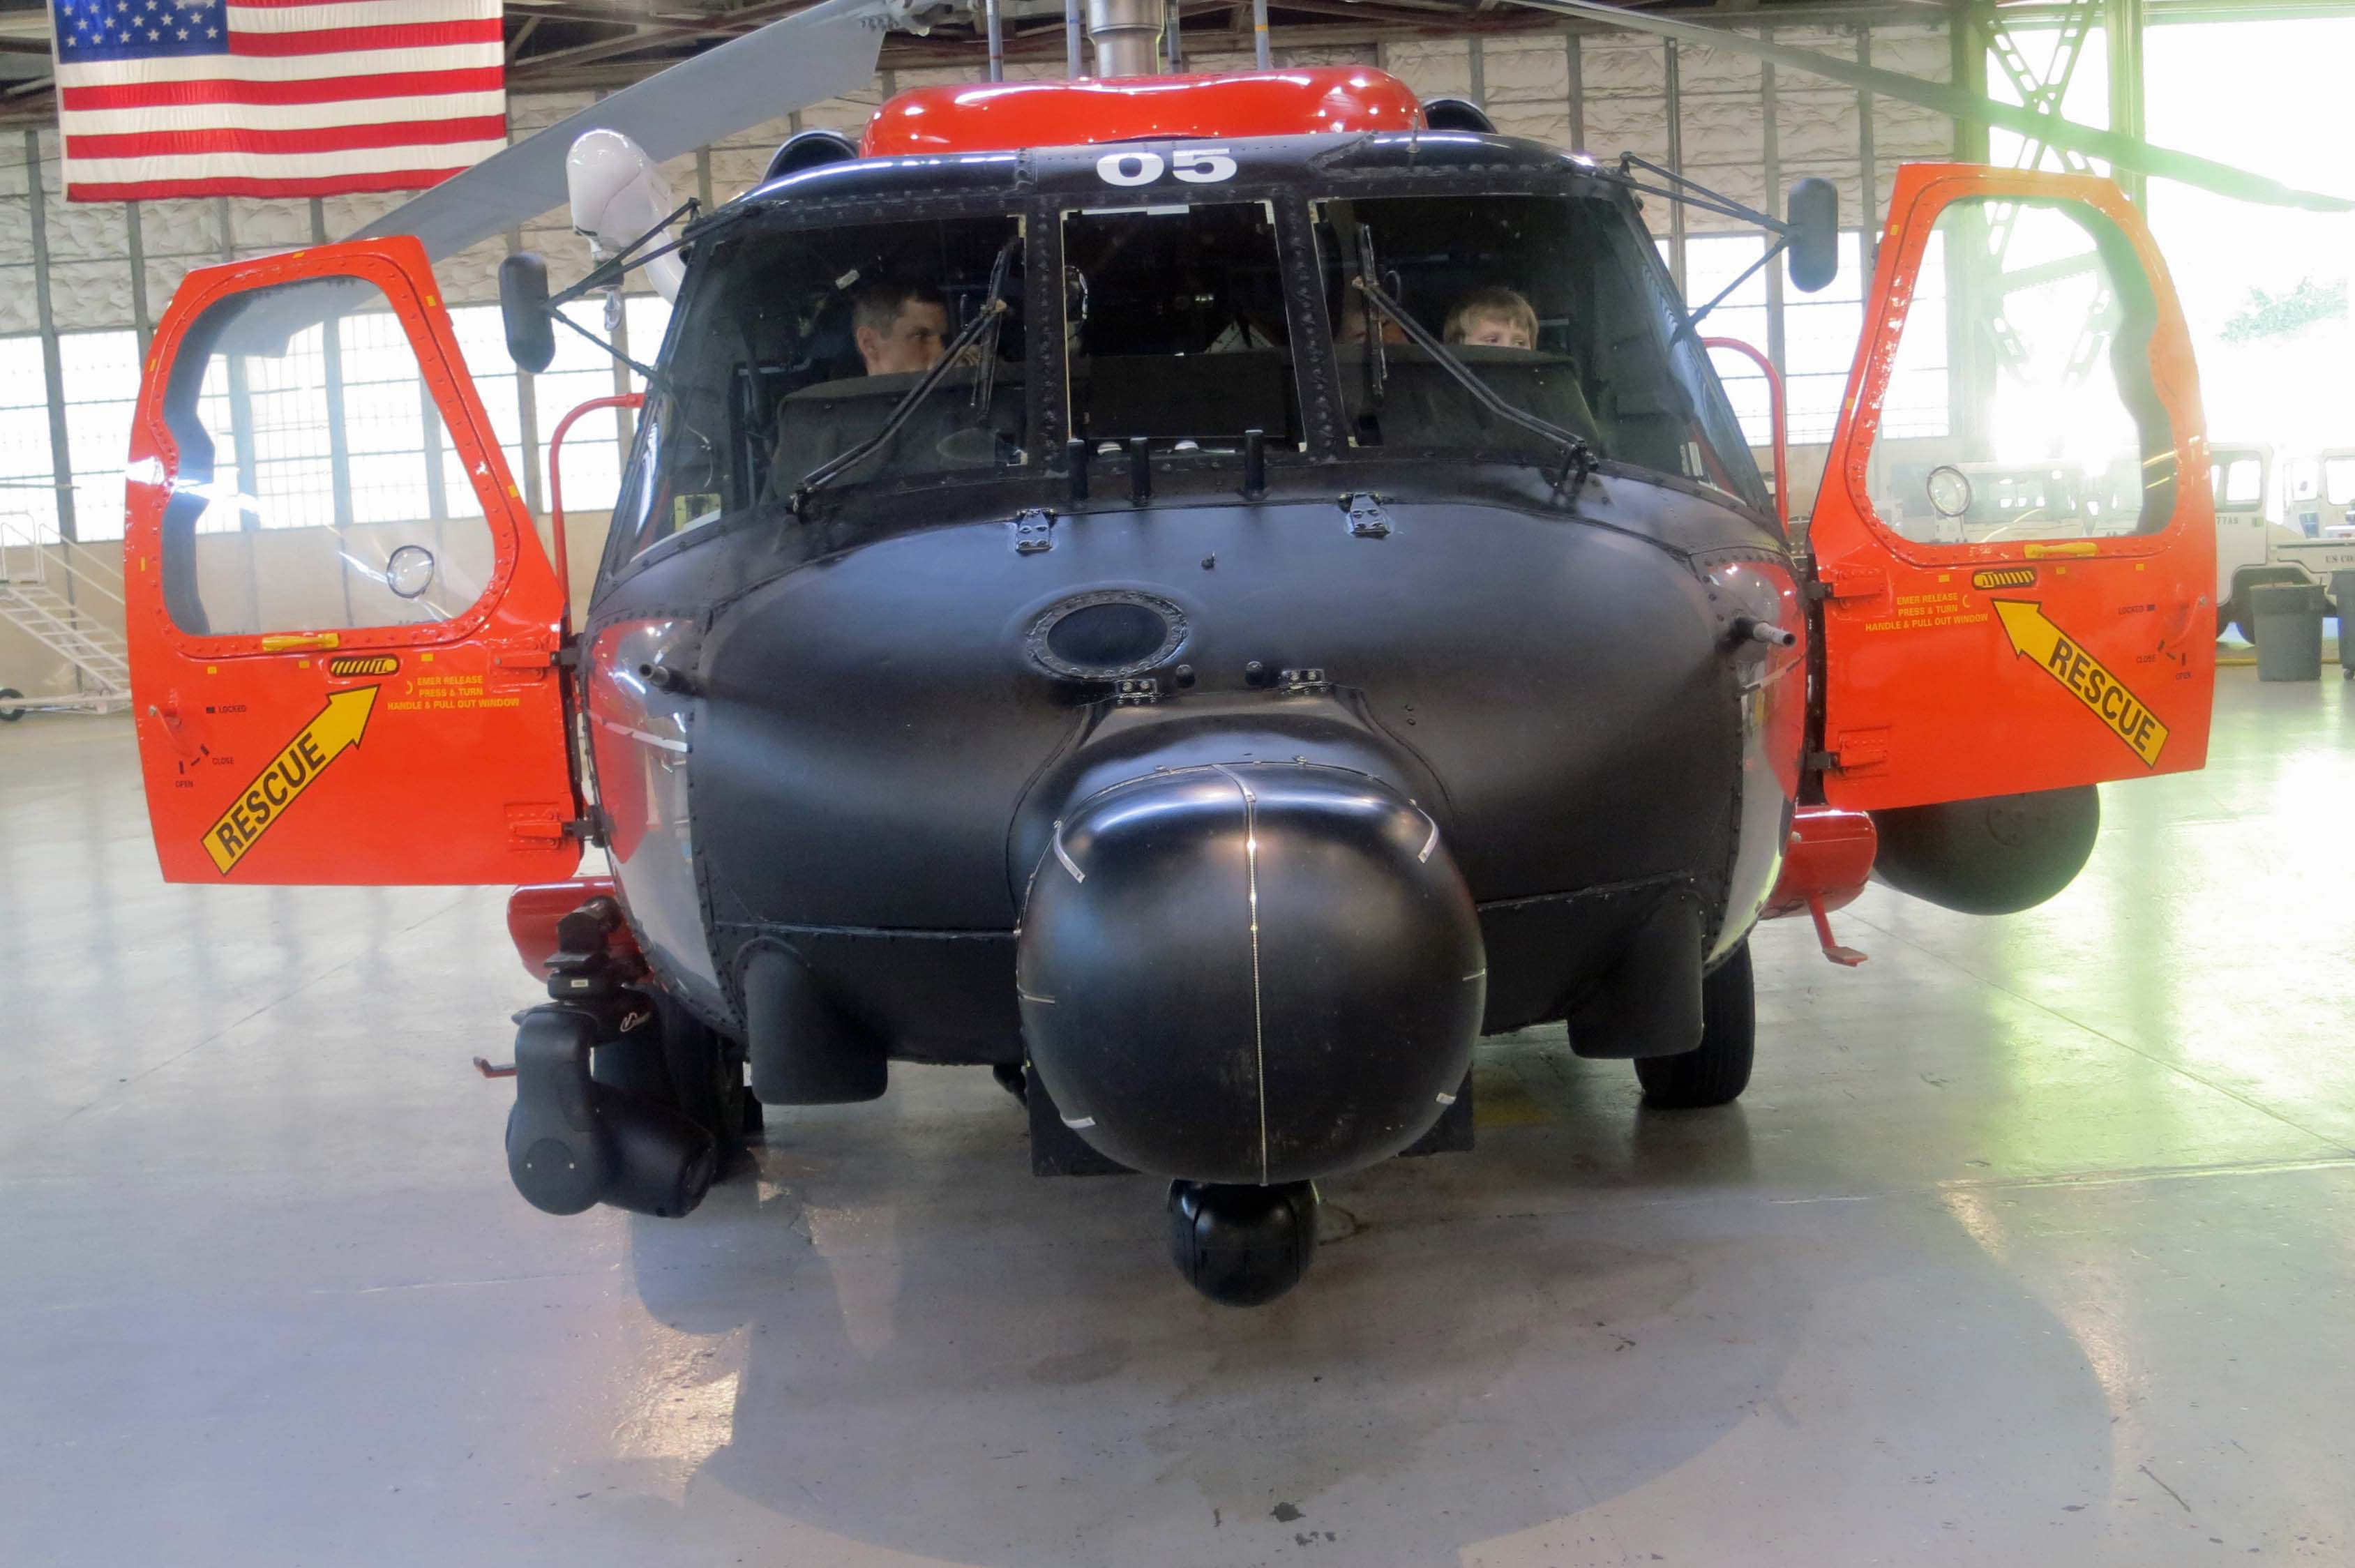 A front view of one of the Coast Guard's H-60s in the Hangar on Kodiak Island. Tony sits on the left in the picture while our grandson Connor sits on the right.